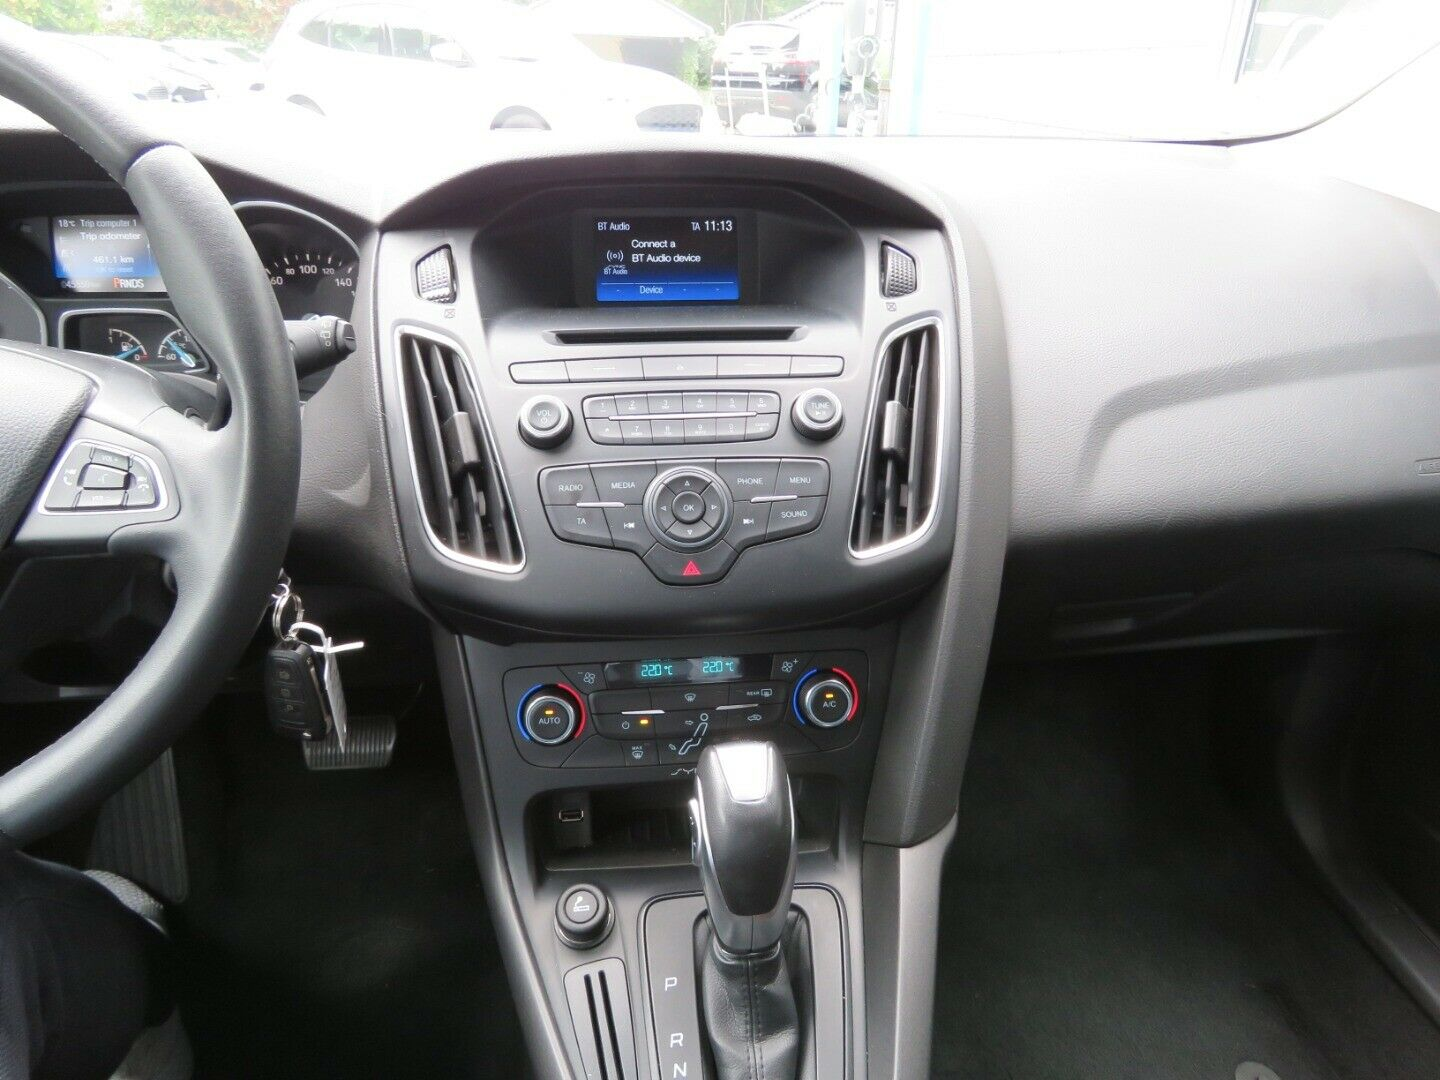 Ford Focus 1,6 Ti-VCT 125 Edition aut. - billede 11